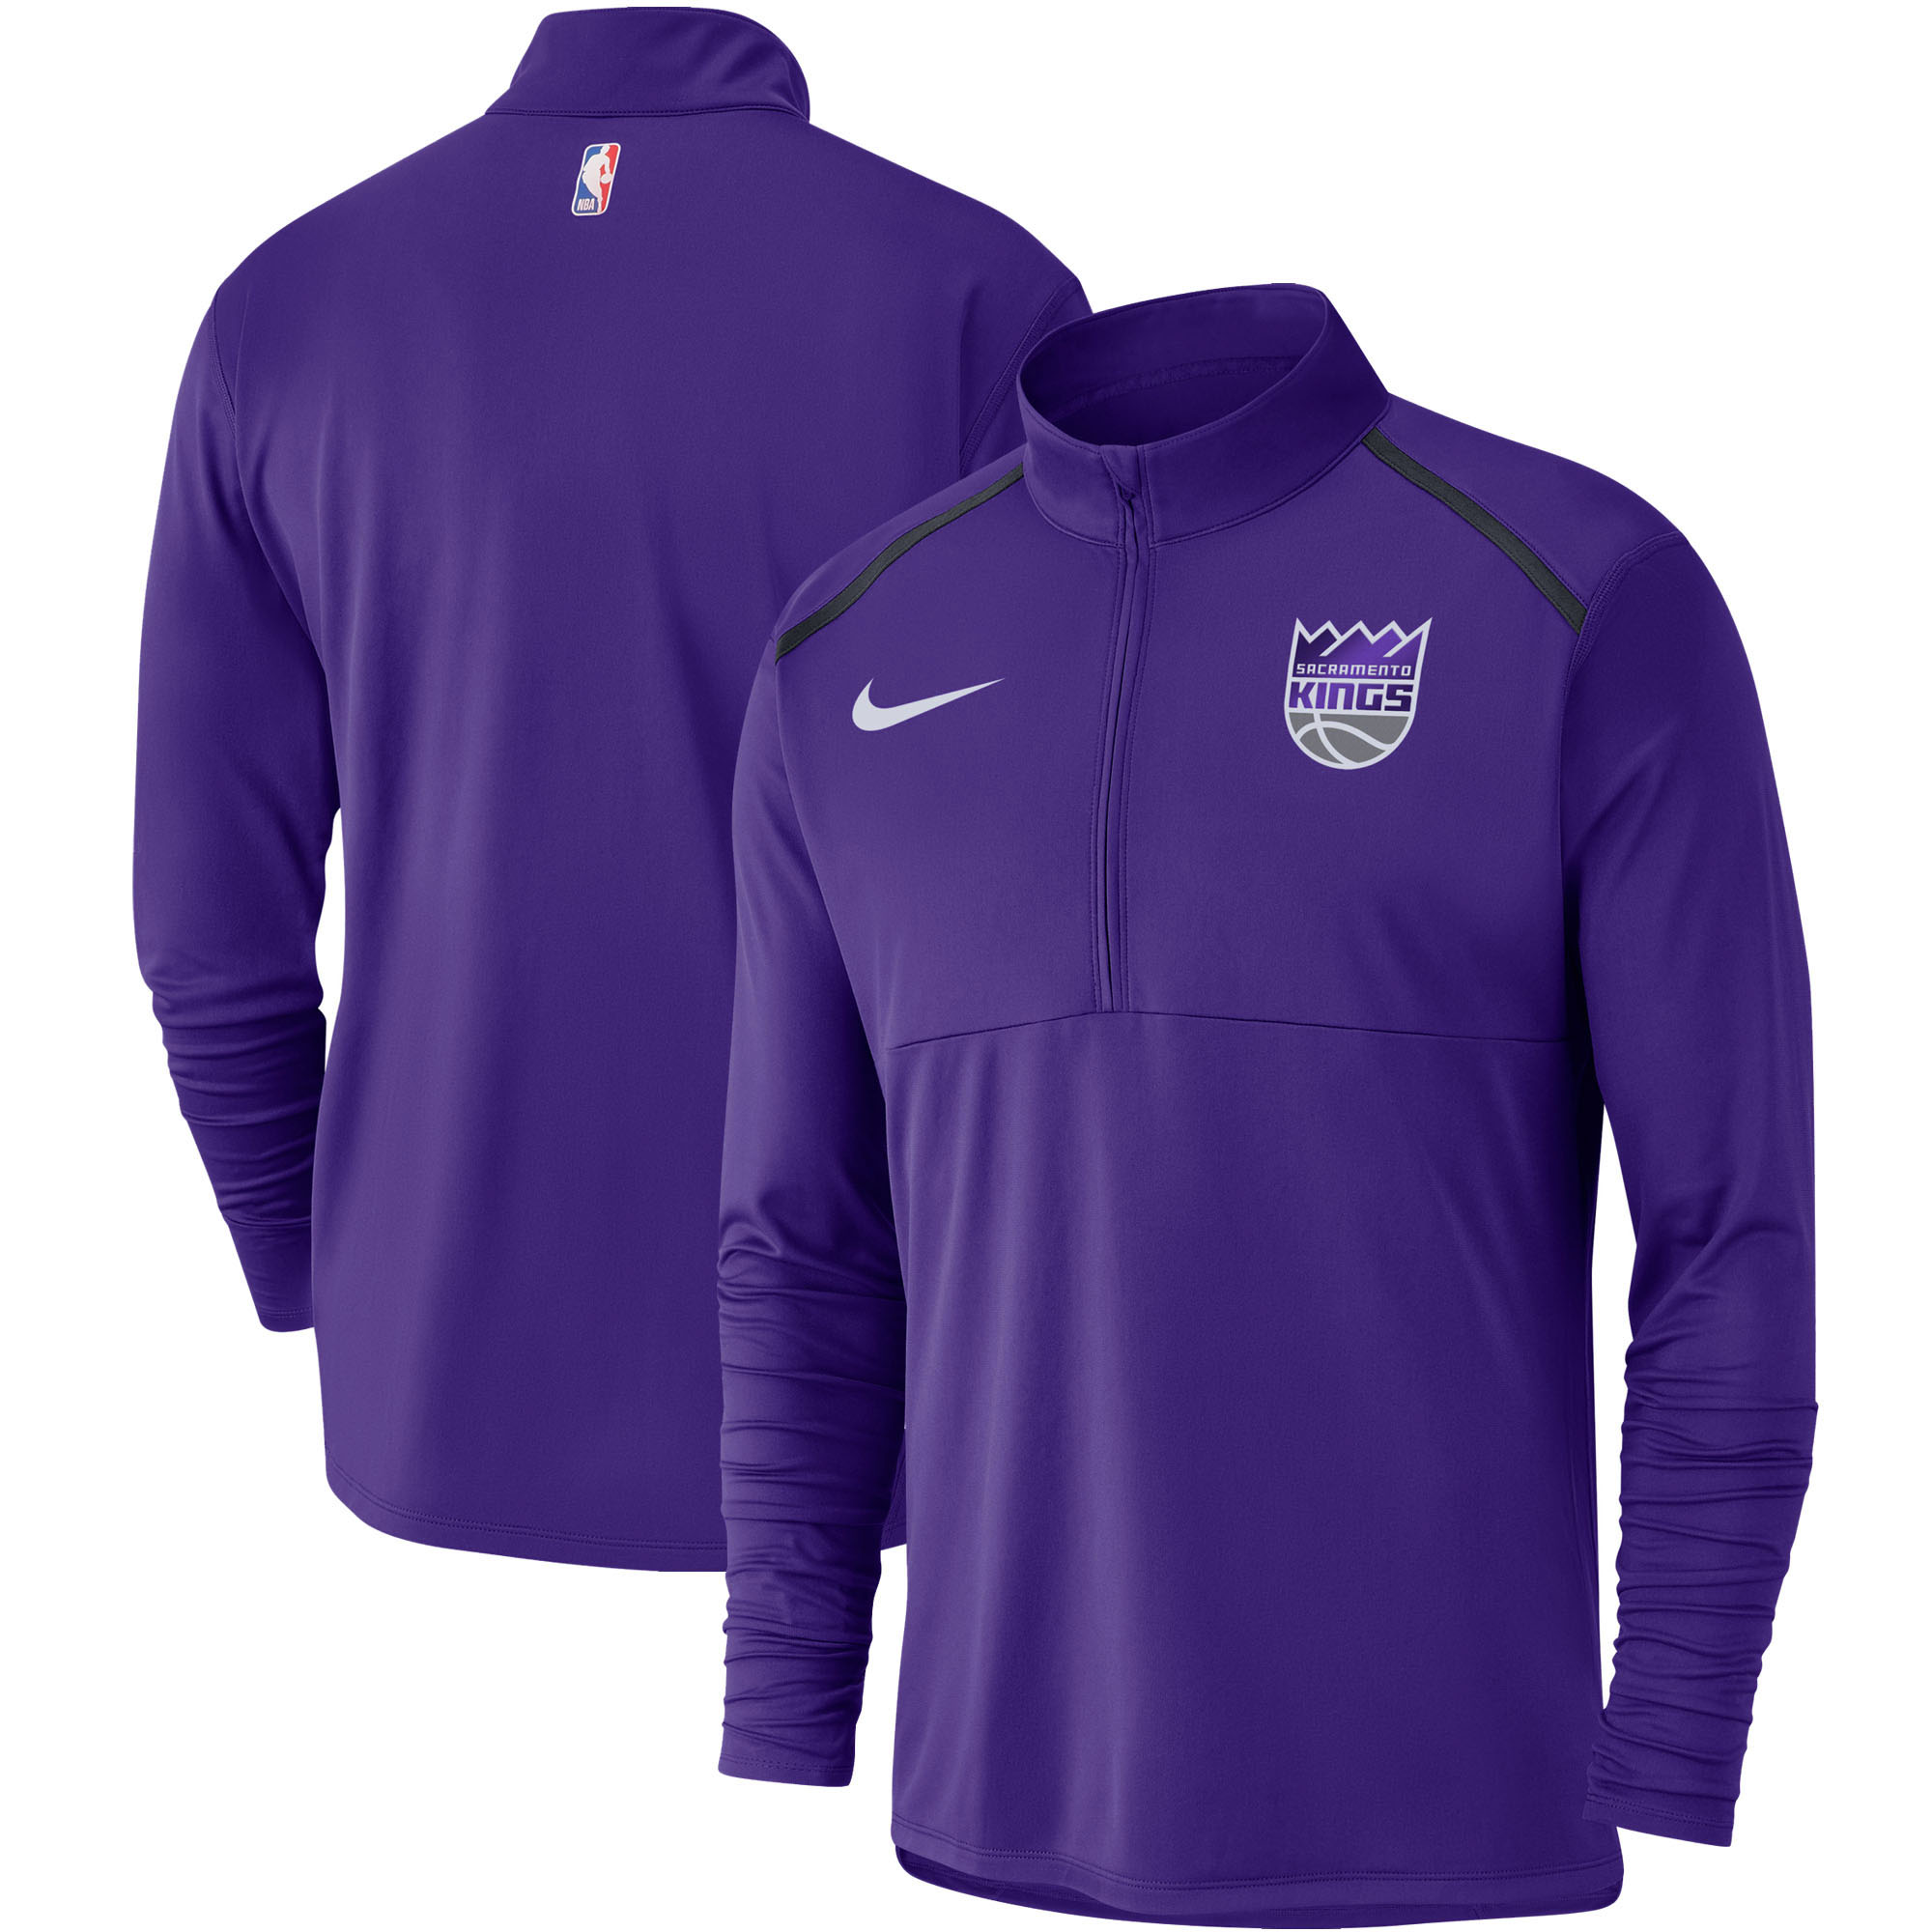 Sacramento Kings Nike Element Performance Half-Zip Pullover Jacket - Purple